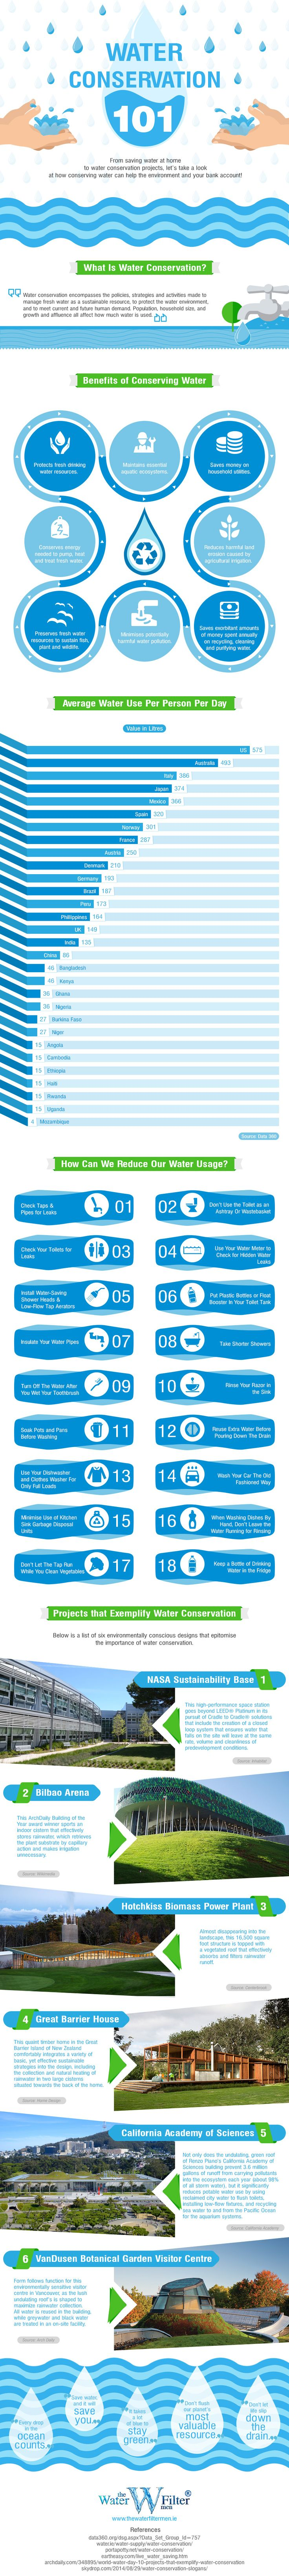 Water-Conservation-Infographic.jpg (900×8036)